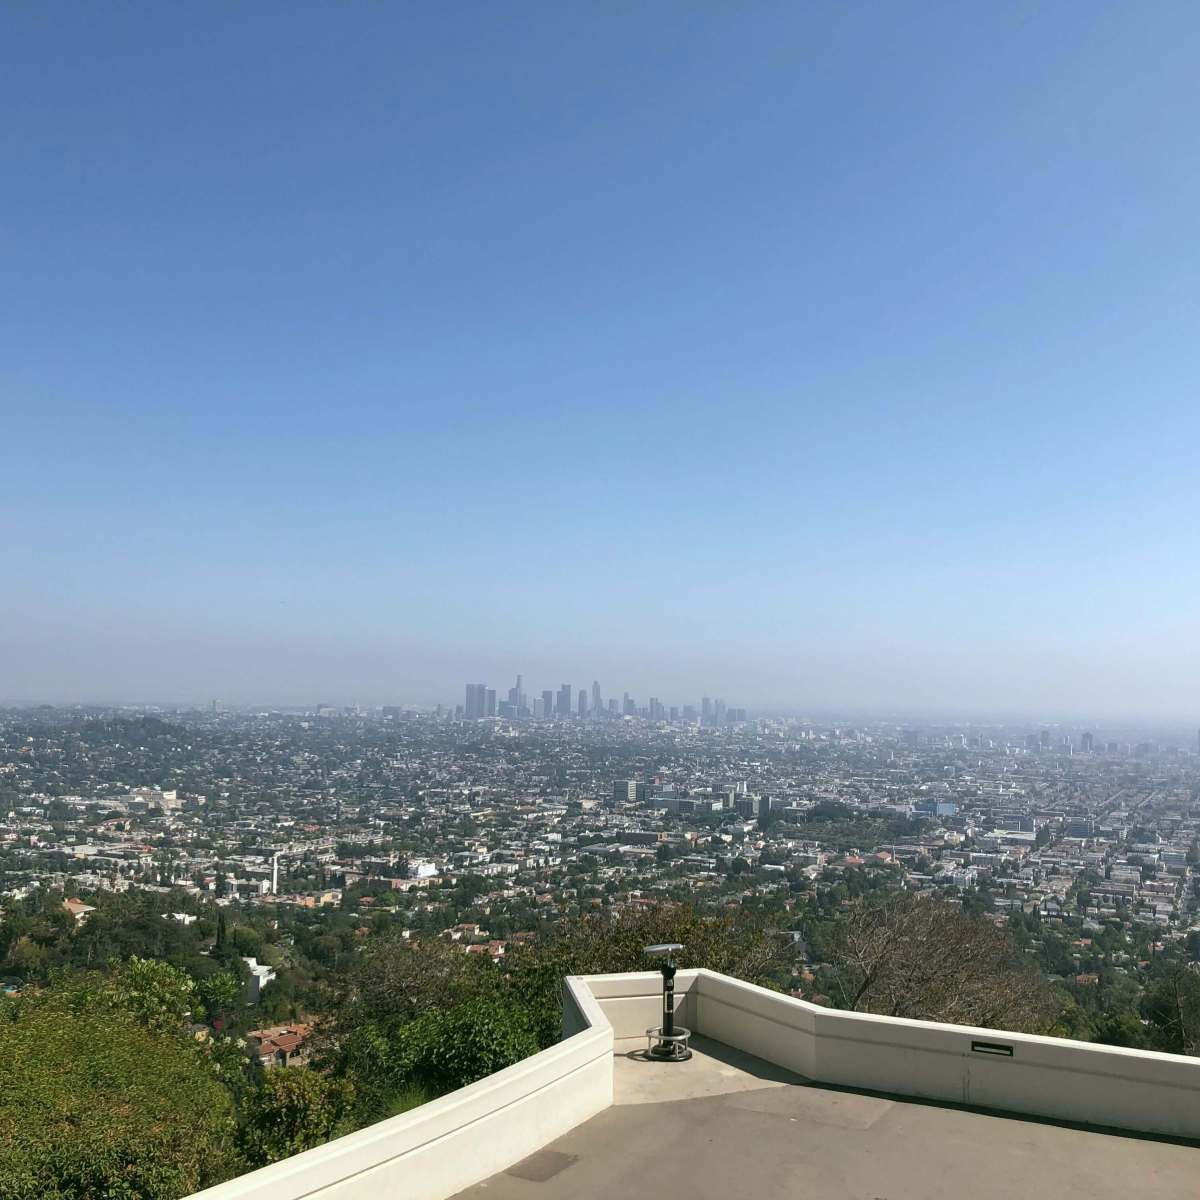 Los Angeles skyline as seen from the Griffith Observatory